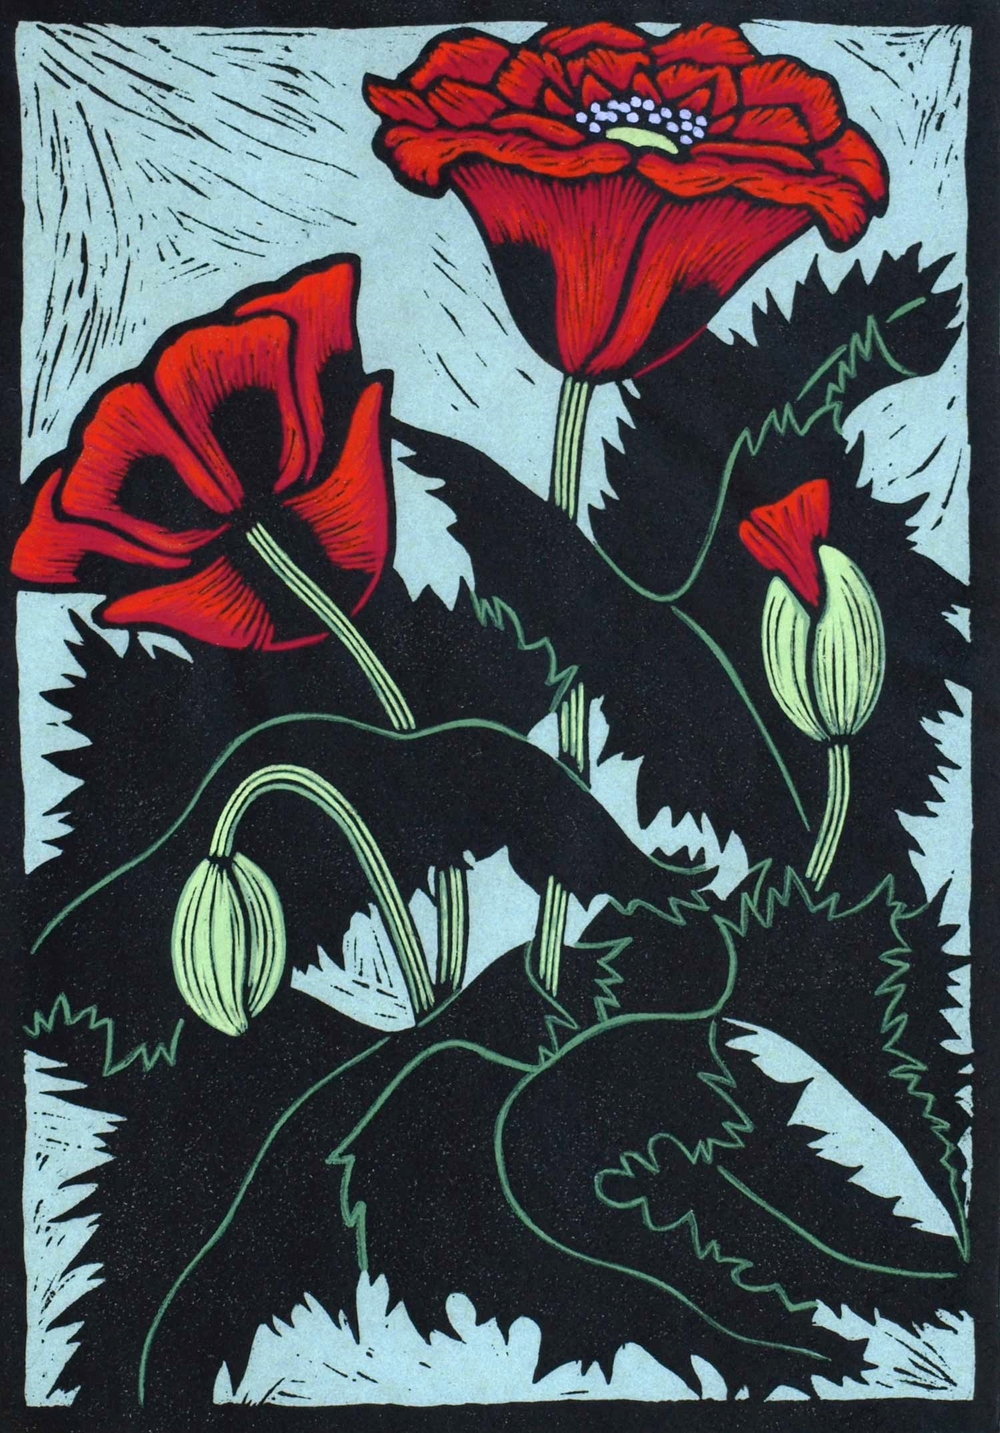 POPPY                                                             25 X 17.5 CM     EDITION OF 50                         HAND COLOURED LINOCUT ON HANDMADE JAPANESE PAPER                     $550